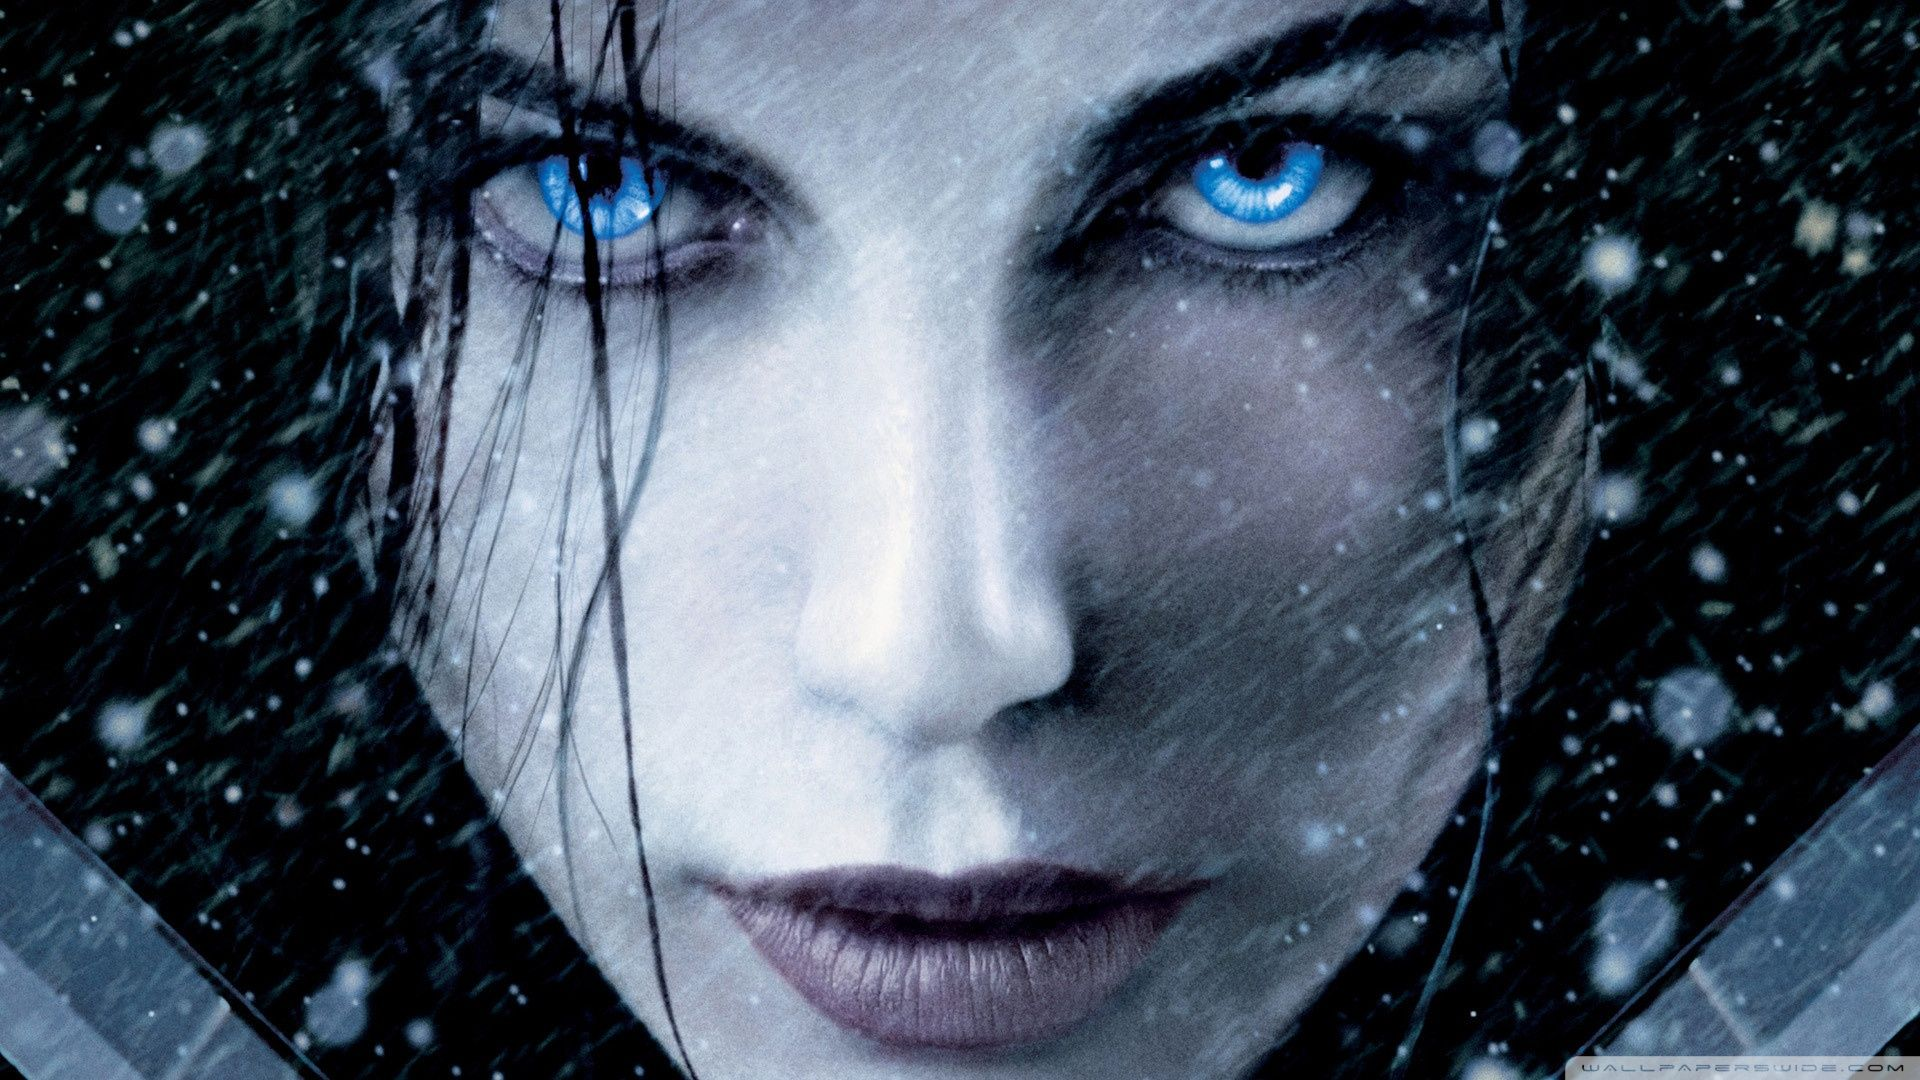 A Must See Image By Cyn Underworld Underworld Movies Kate